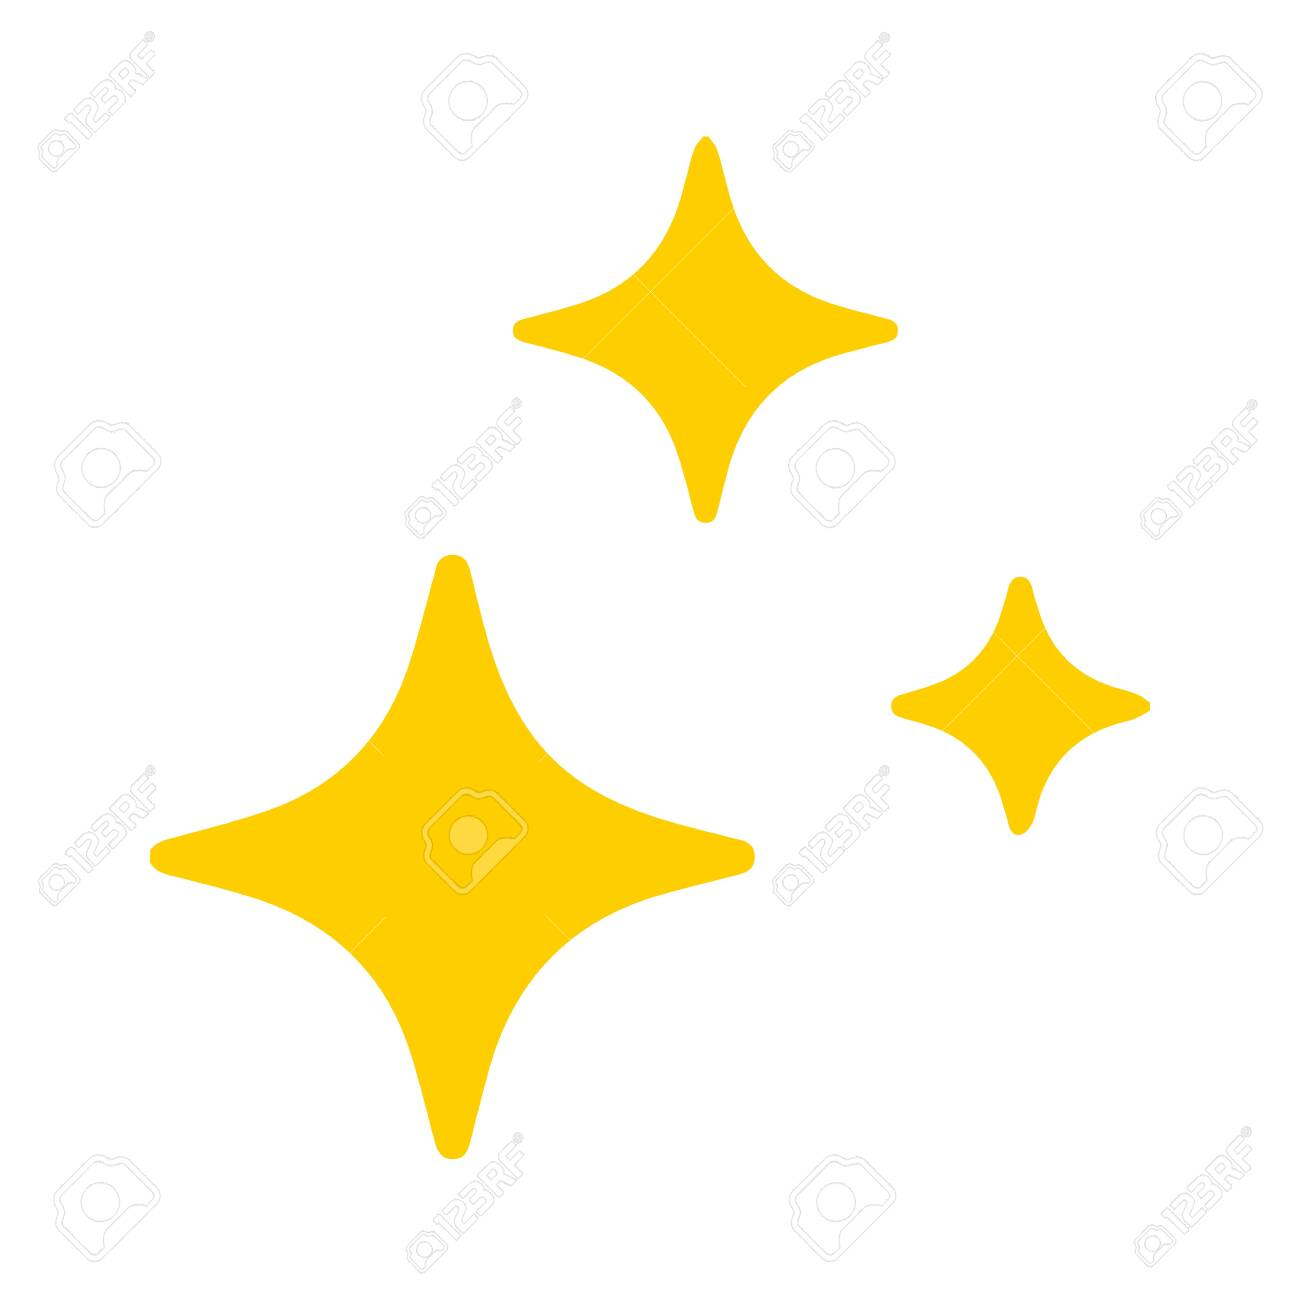 Star Blink icon Vector.